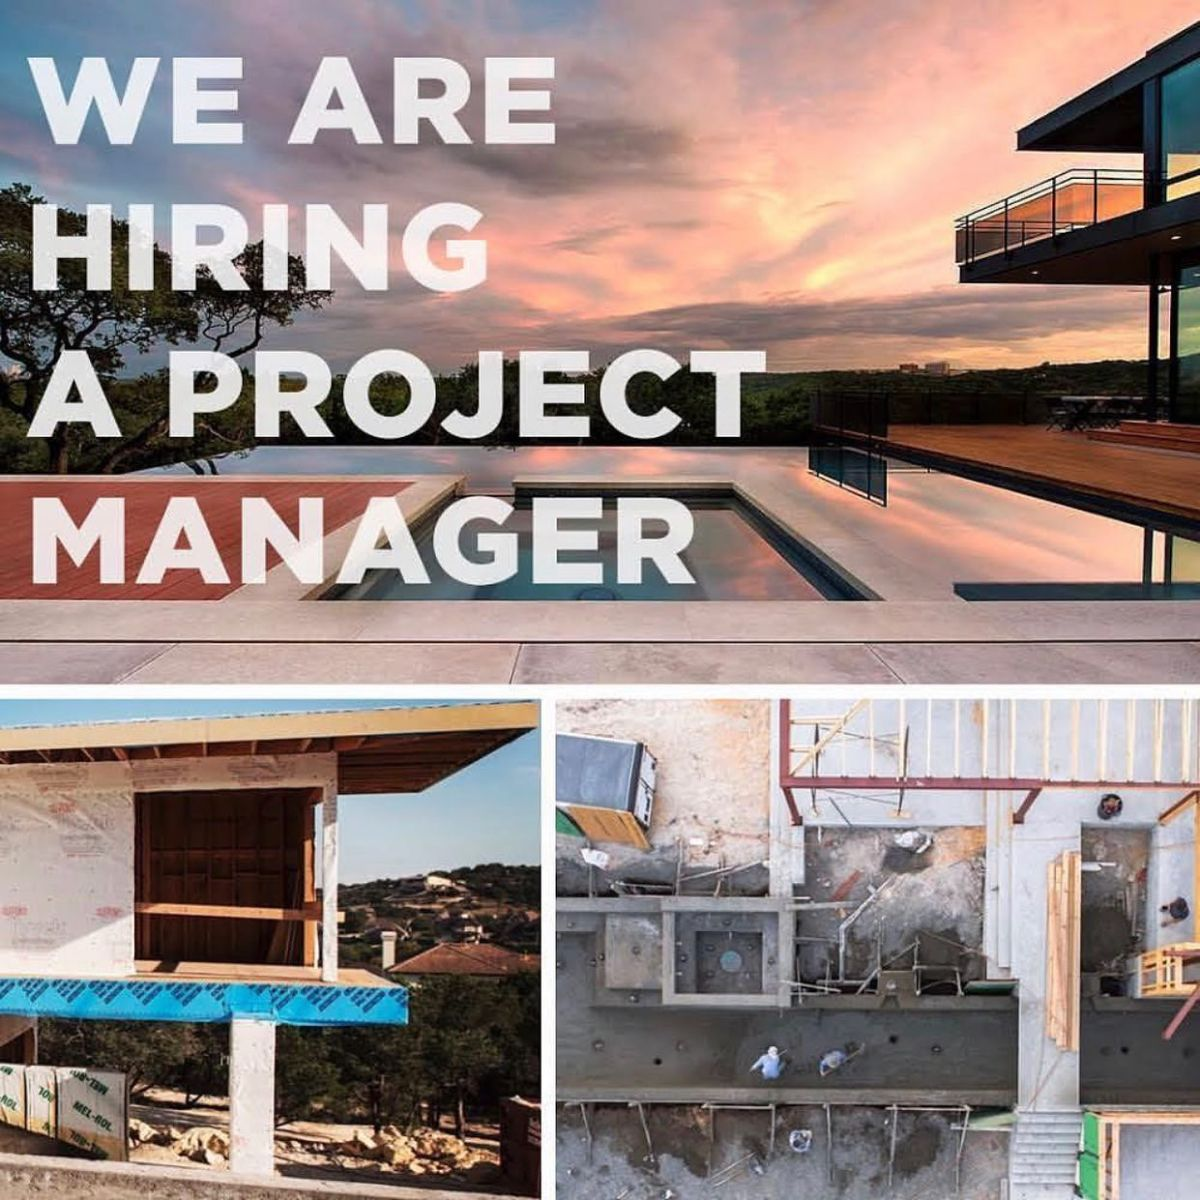 If you're a seasoned Project Manager or Superintendent then please give us a call. We have lots of great projects to build and are looking for those who want to be a part of a team of professionals.